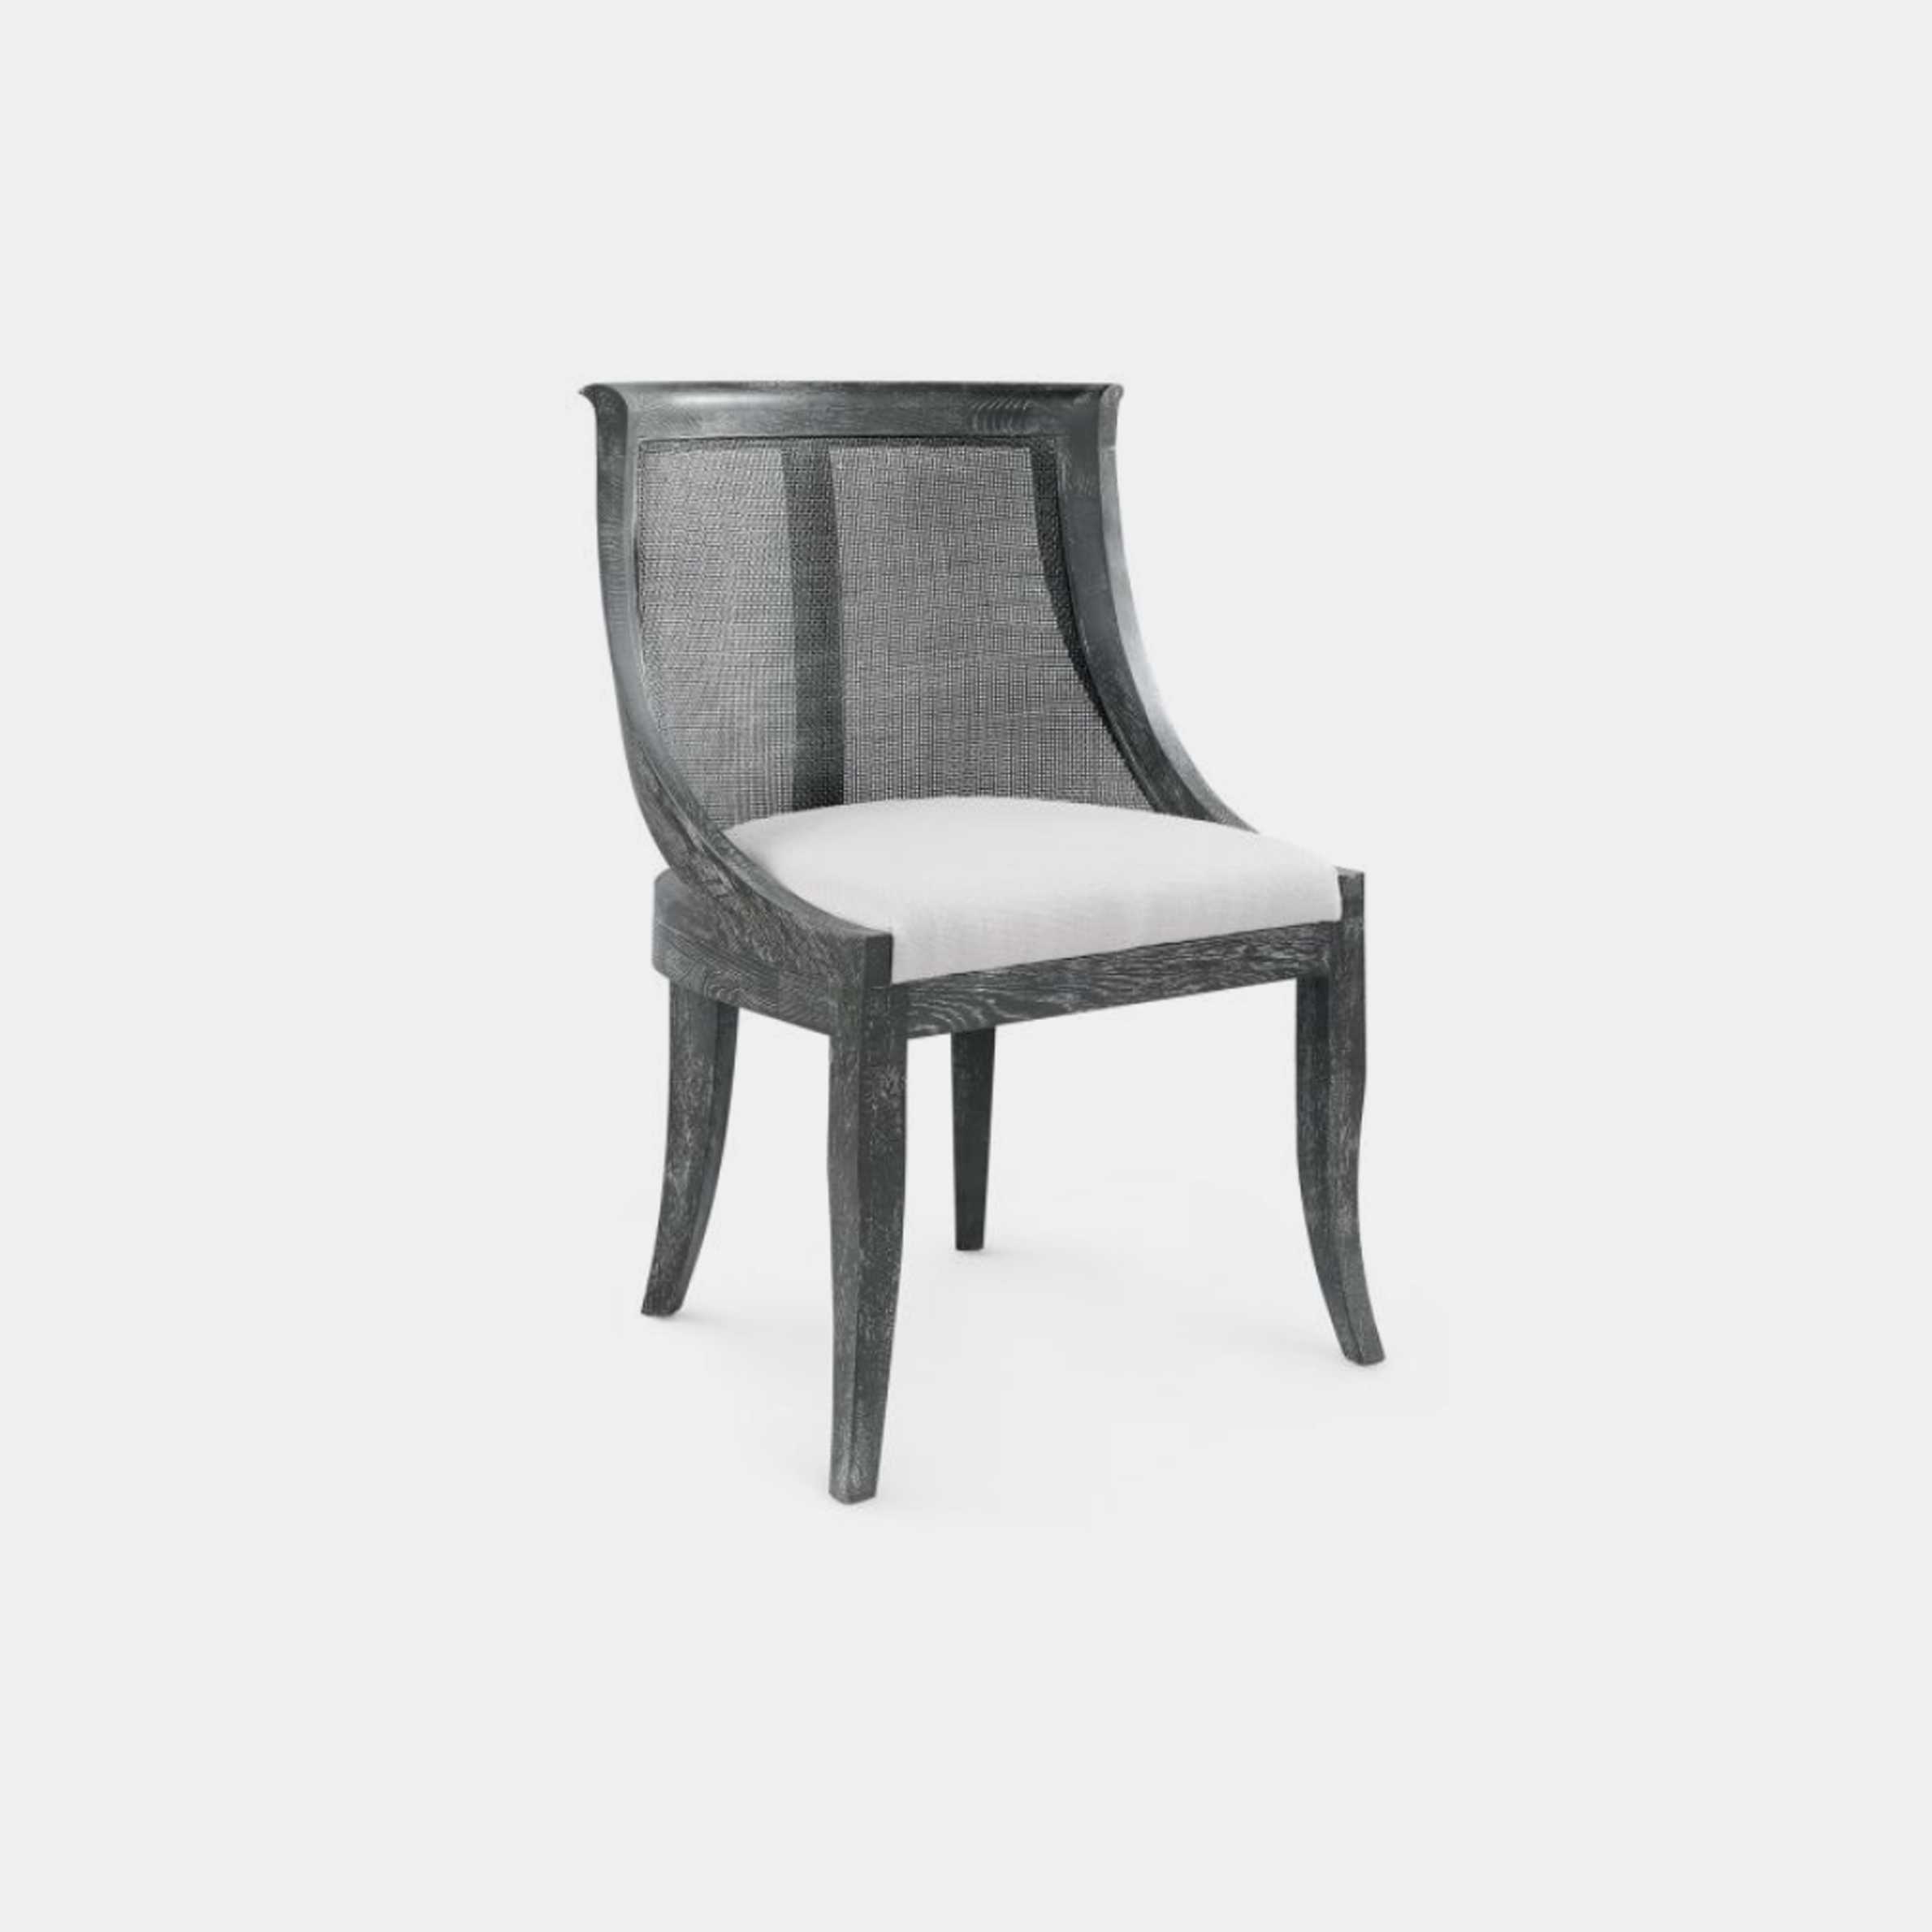 "Monaco Armchair  24""w x 22.5""d x 35.5""h Available in gray (shown), white, and natural. SKU3490BGW"